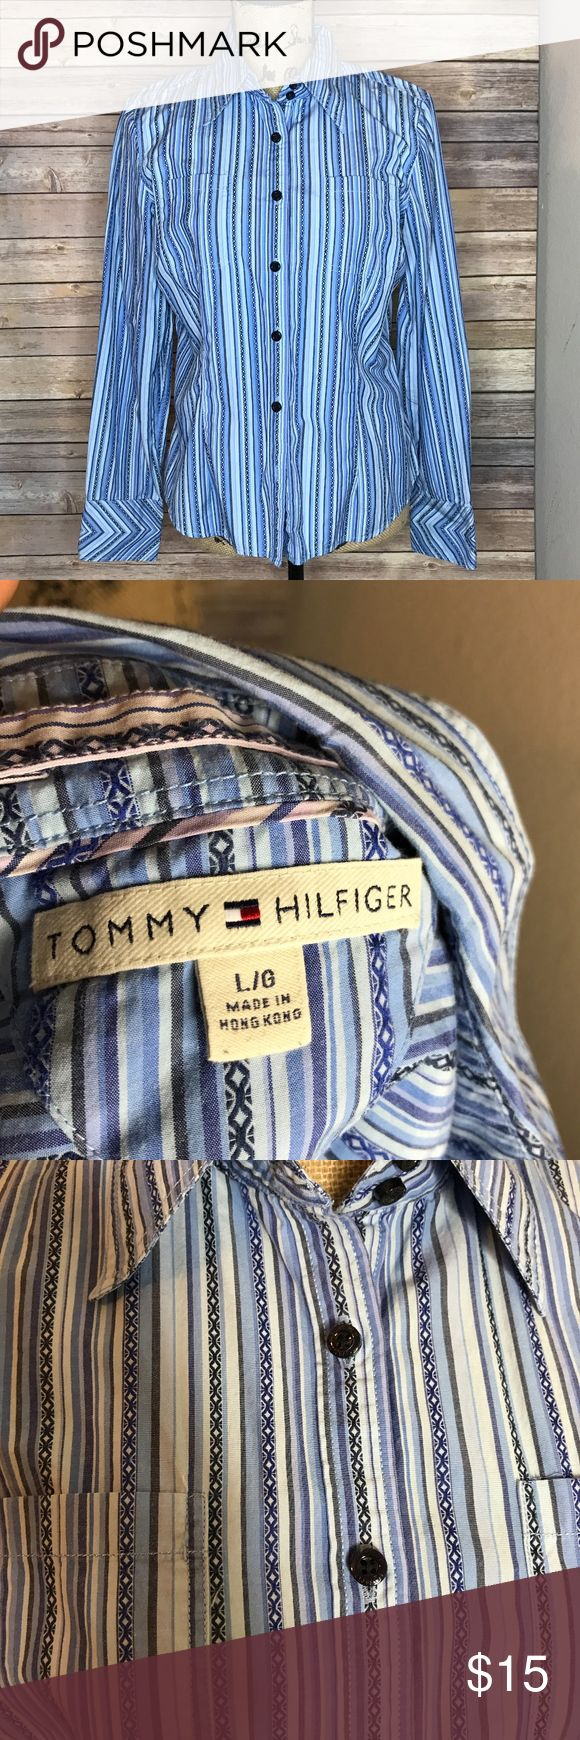 Tommy Hilfiger Blue Tribal Patterned Button Down Long Sleeve Size L ⁉️Need more information or measurements? Please don't hesitate to ask  ❌Sorry, I am unable model items!  ✅ Fast Shipper: Shipping Same Day/Next Day  🚫I do not trade items/ No returns  💕I do accept REASONABLE offers ☺ Please do not offer really low on an item.  The prices in my store are pretty low 🙃 Tommy Hilfiger Tops Button Down Shirts